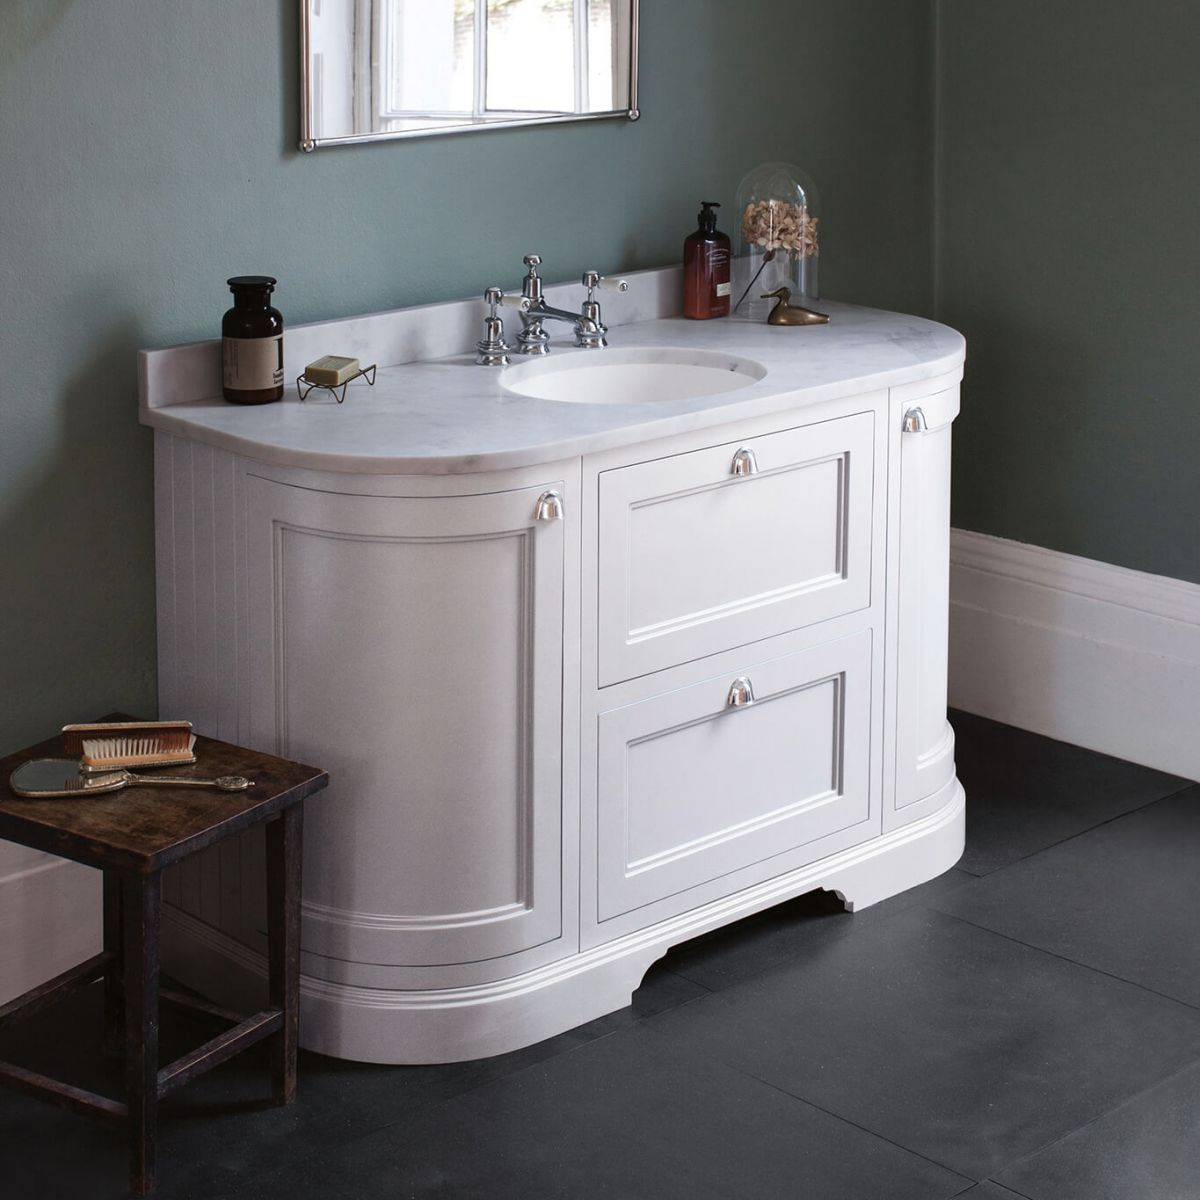 Freestanding 1340 Curved Vanity with Drawers